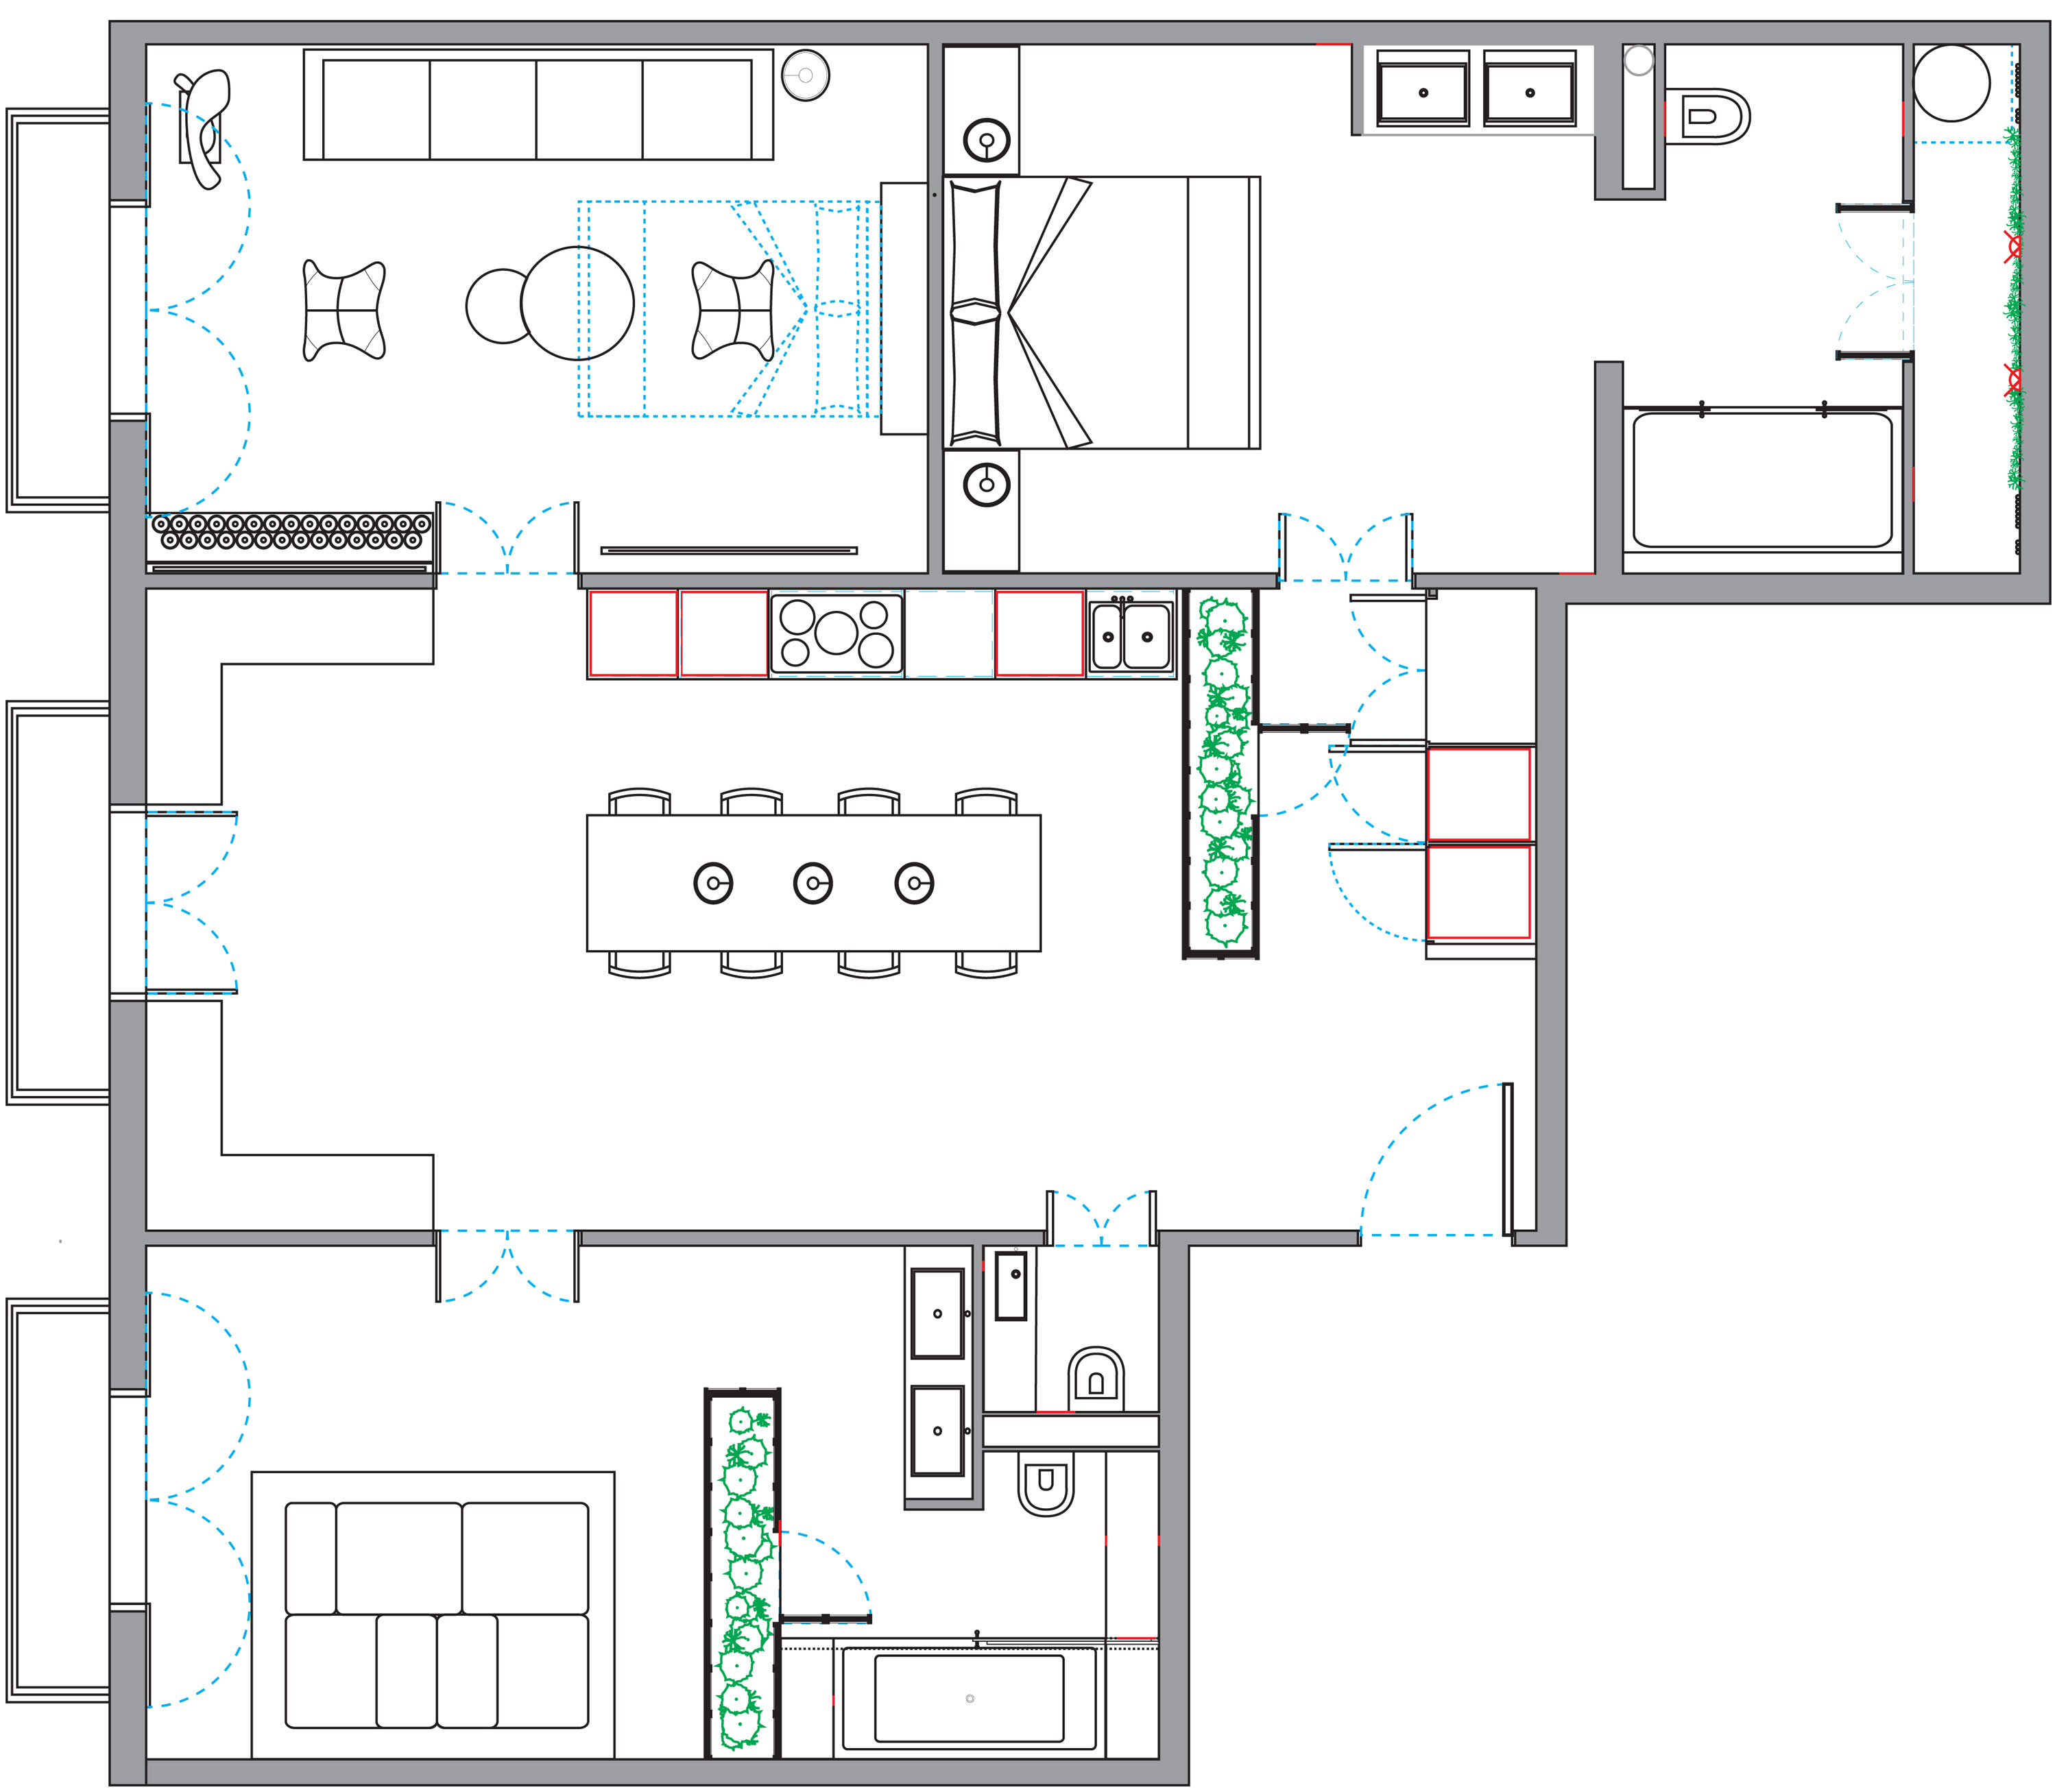 ... Room Layout: Virtual Free Software Room Layout Maker Planner Online